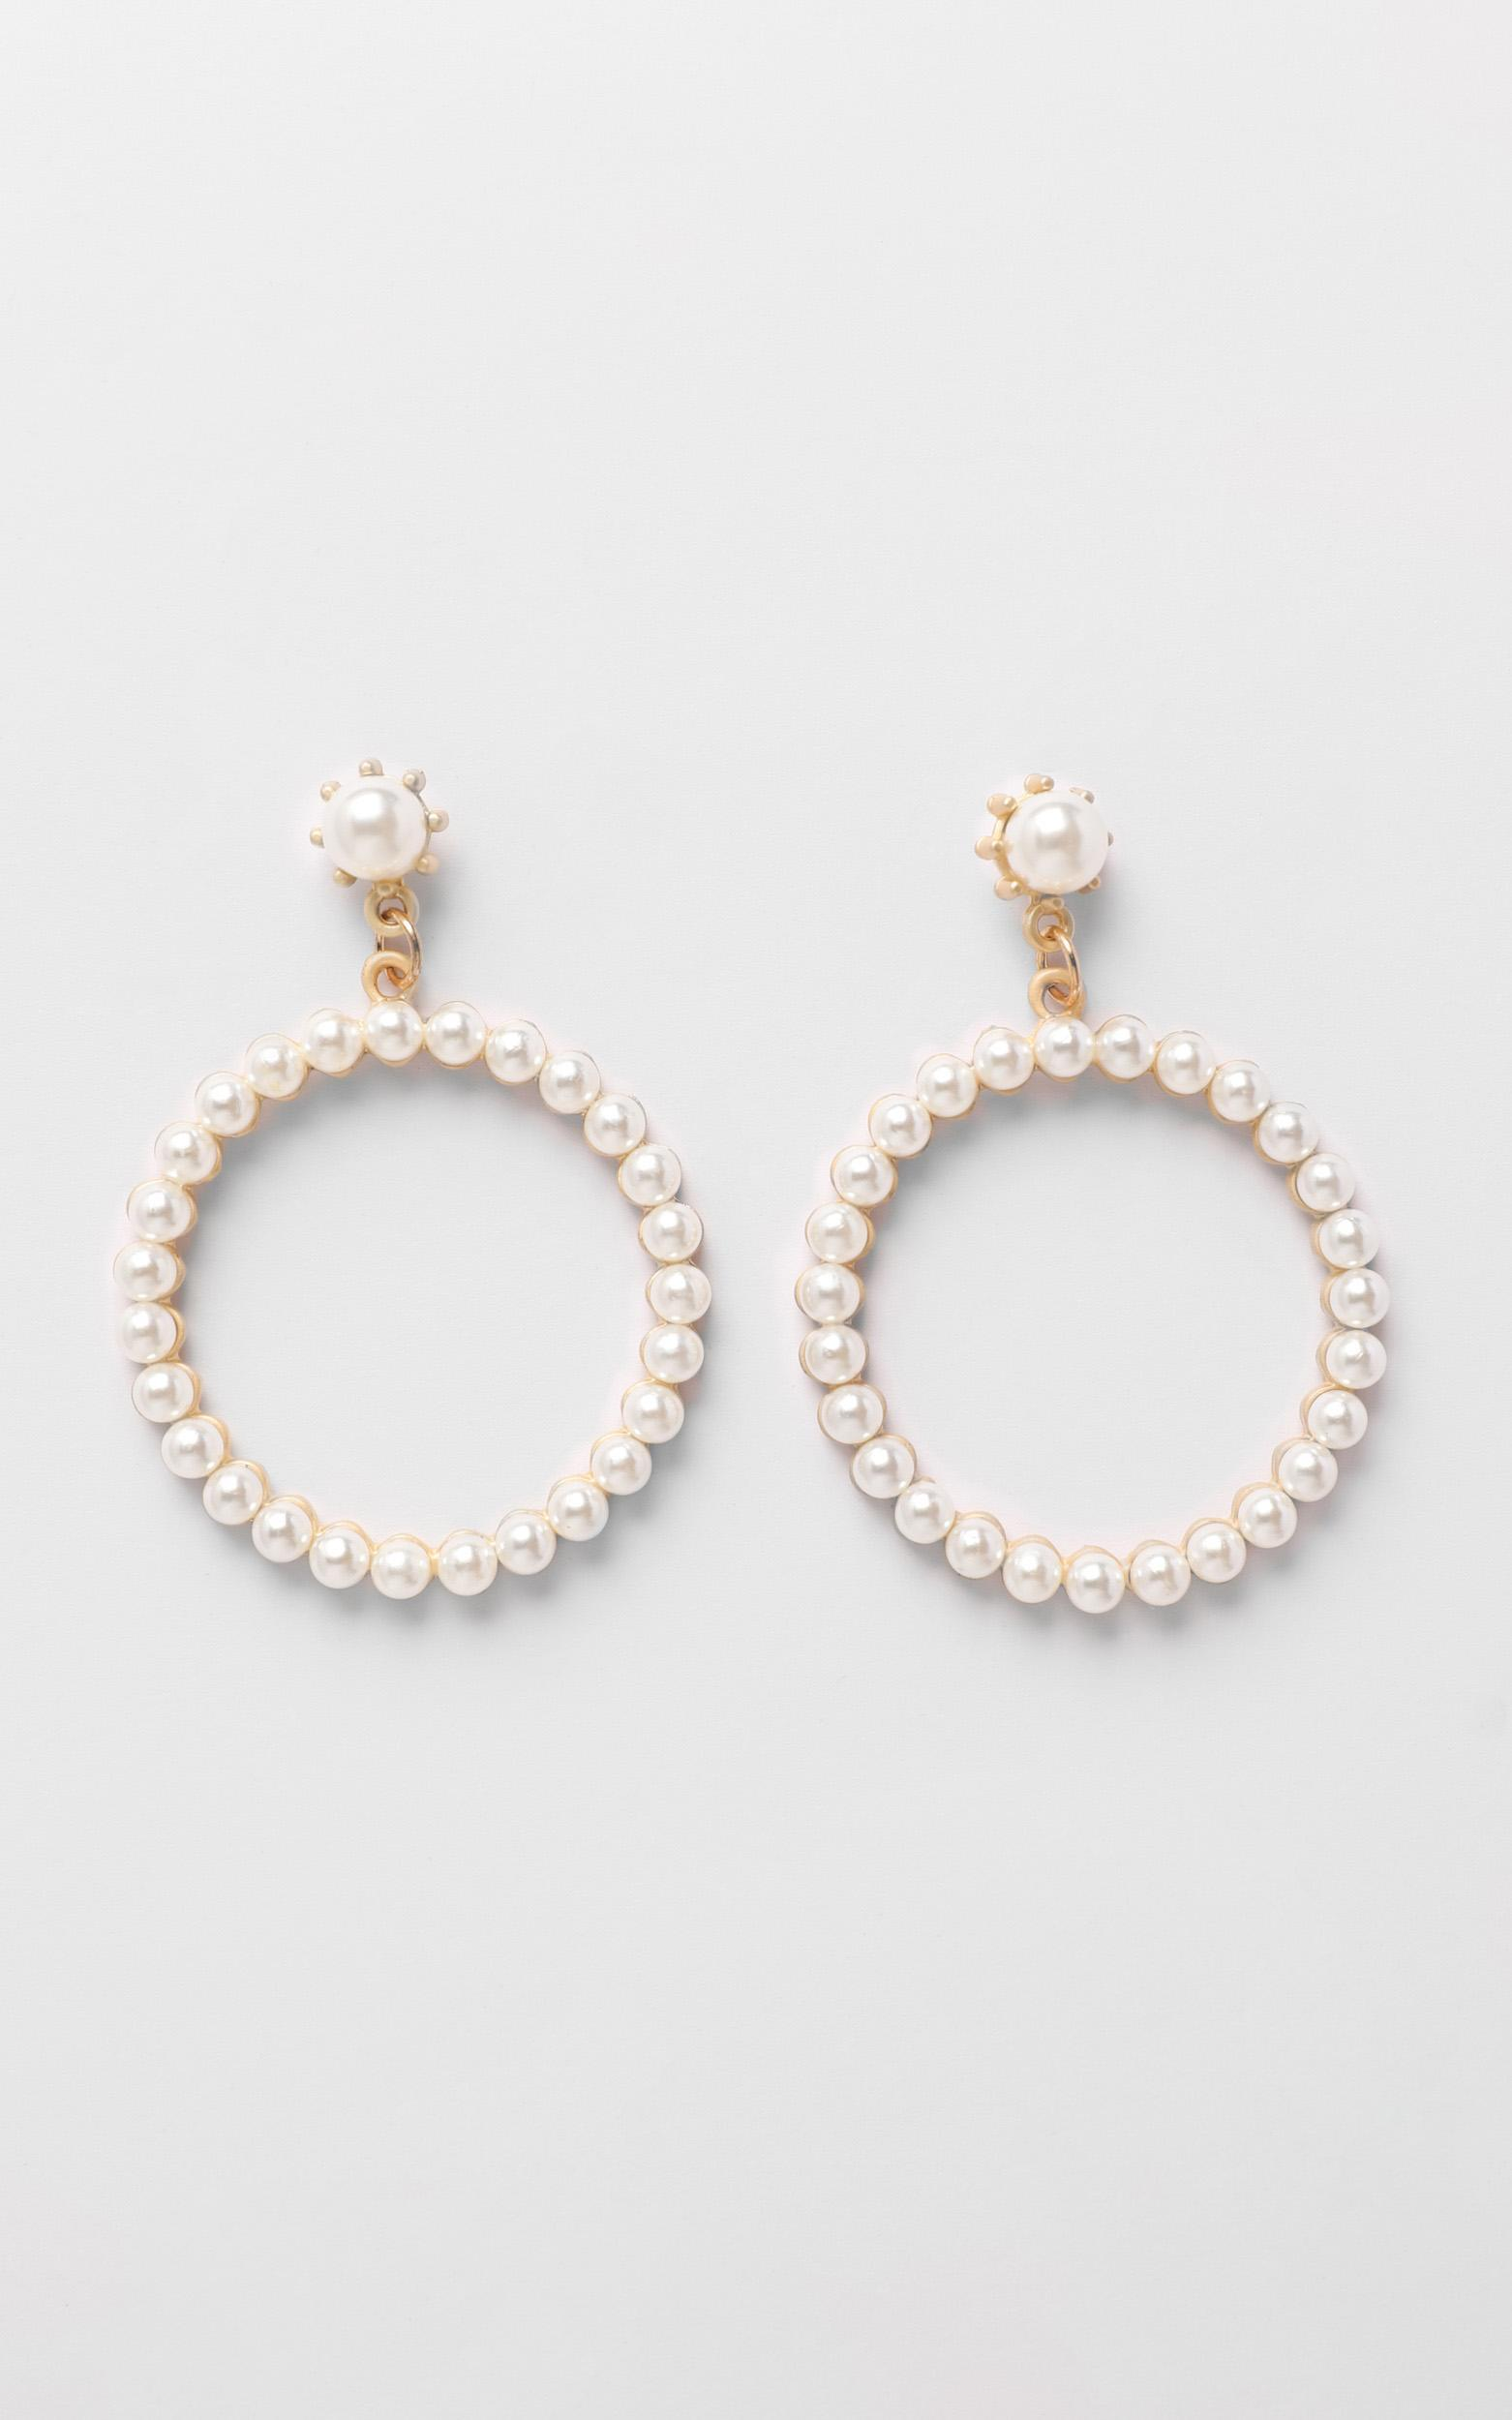 JT Luxe - Kaia Pearl Hoop Earrings in Gold, , hi-res image number null